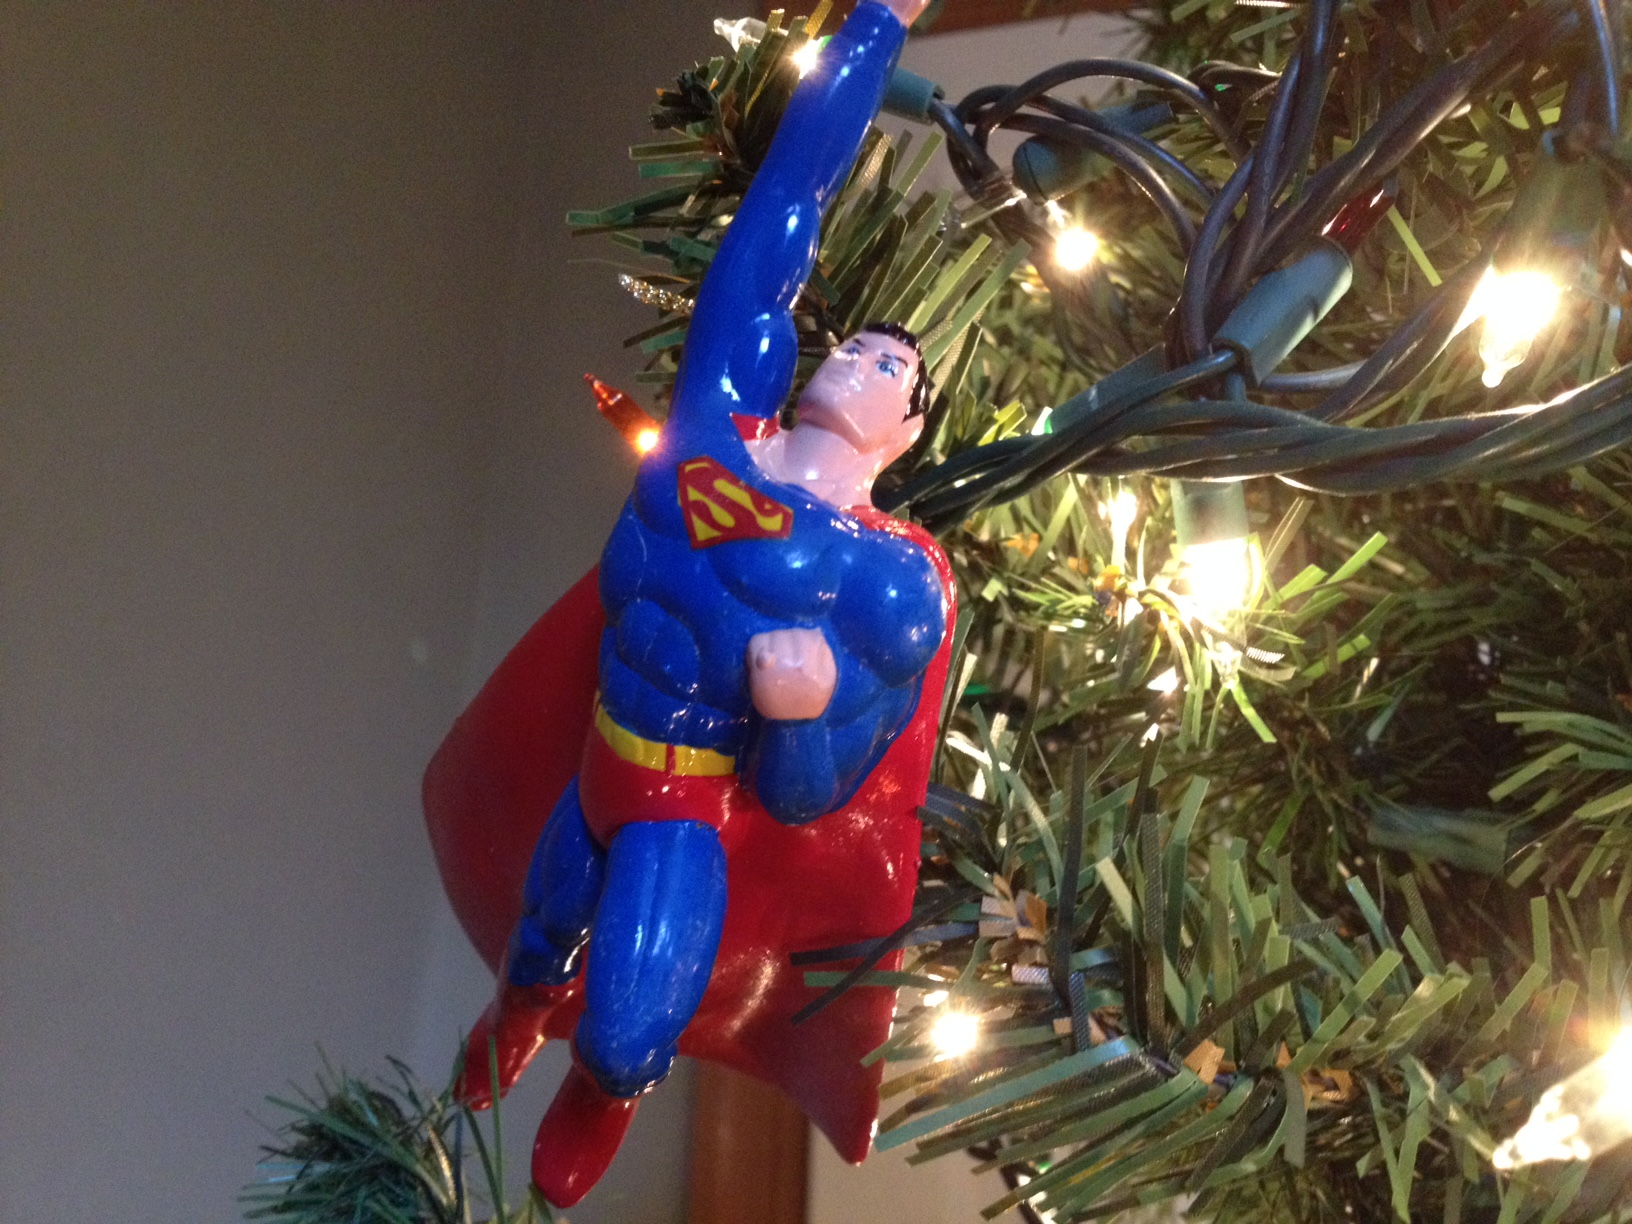 Batman christmas tree ornaments - I Like Batman And I Have Superman Hanging From My Christmas Tree But I Just Watched The Latest Trailer For Batman V Superman Dawn Of Justice